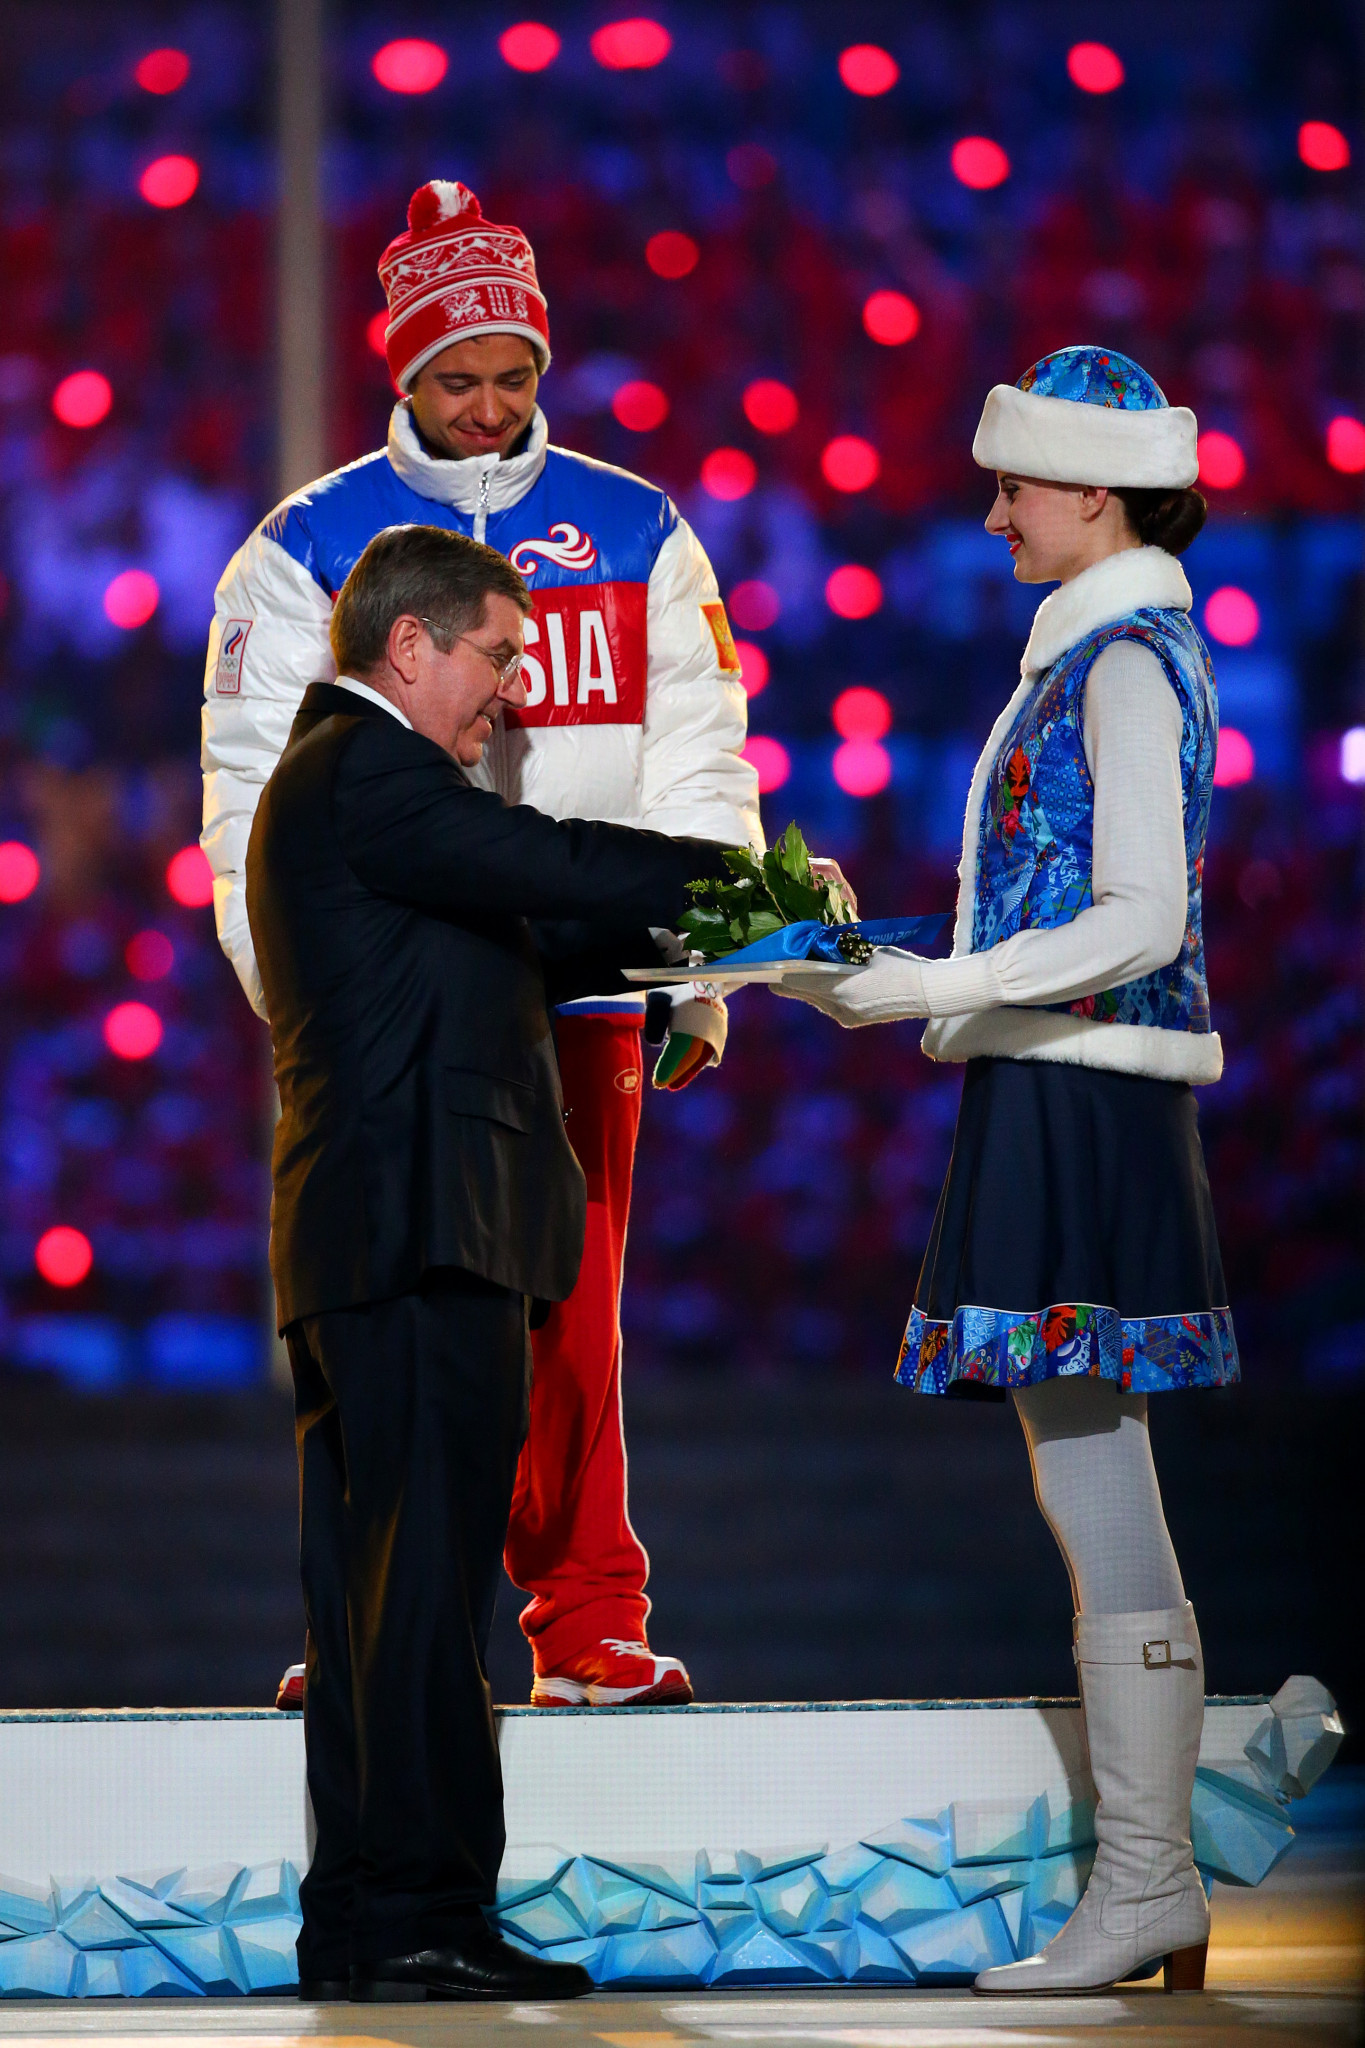 Ilia Chernousov receives his Olympic bronze medal in the 50km mass start cross-country event from IOC President Thomas Bach during the Closing Ceremony of Sochi 2014 ©Getty Images